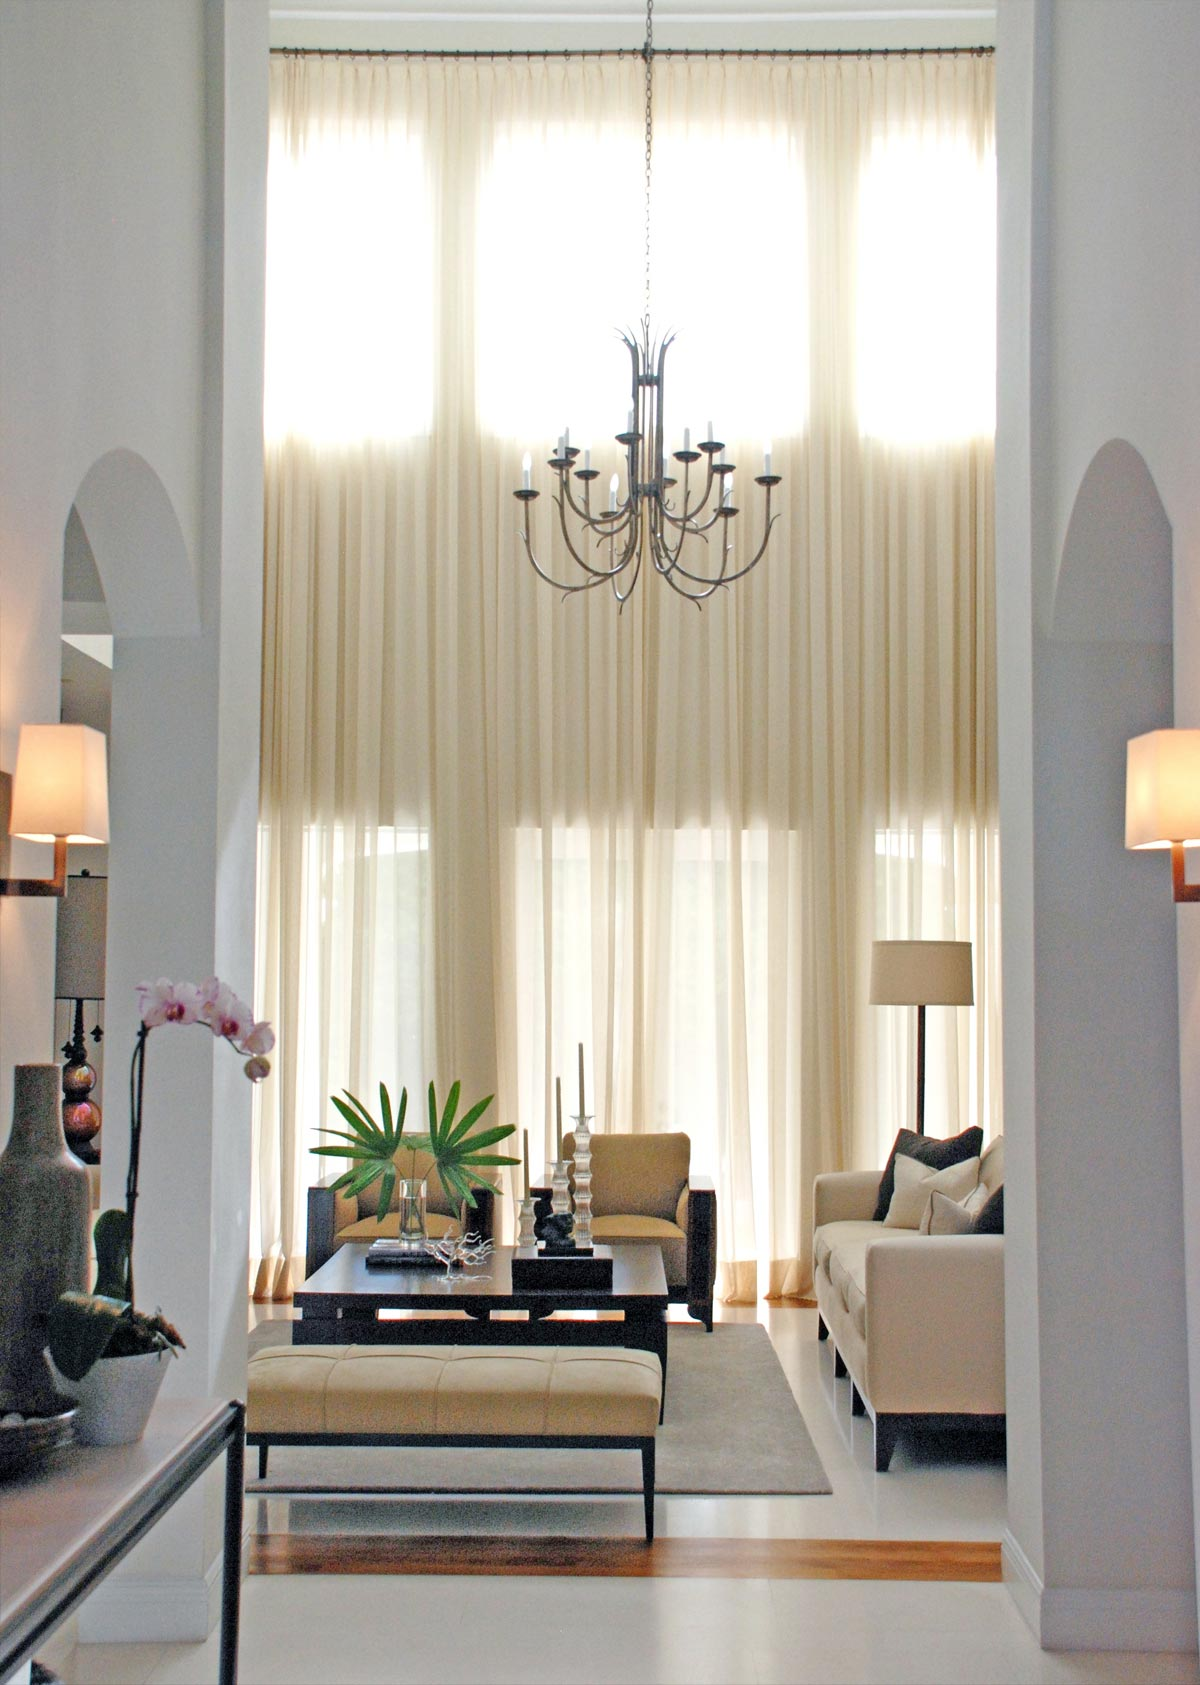 quality carlo products us ask curtains srl using original information only drapes more high produce a we to respecting caironi and the free italian or feel for materials top style c